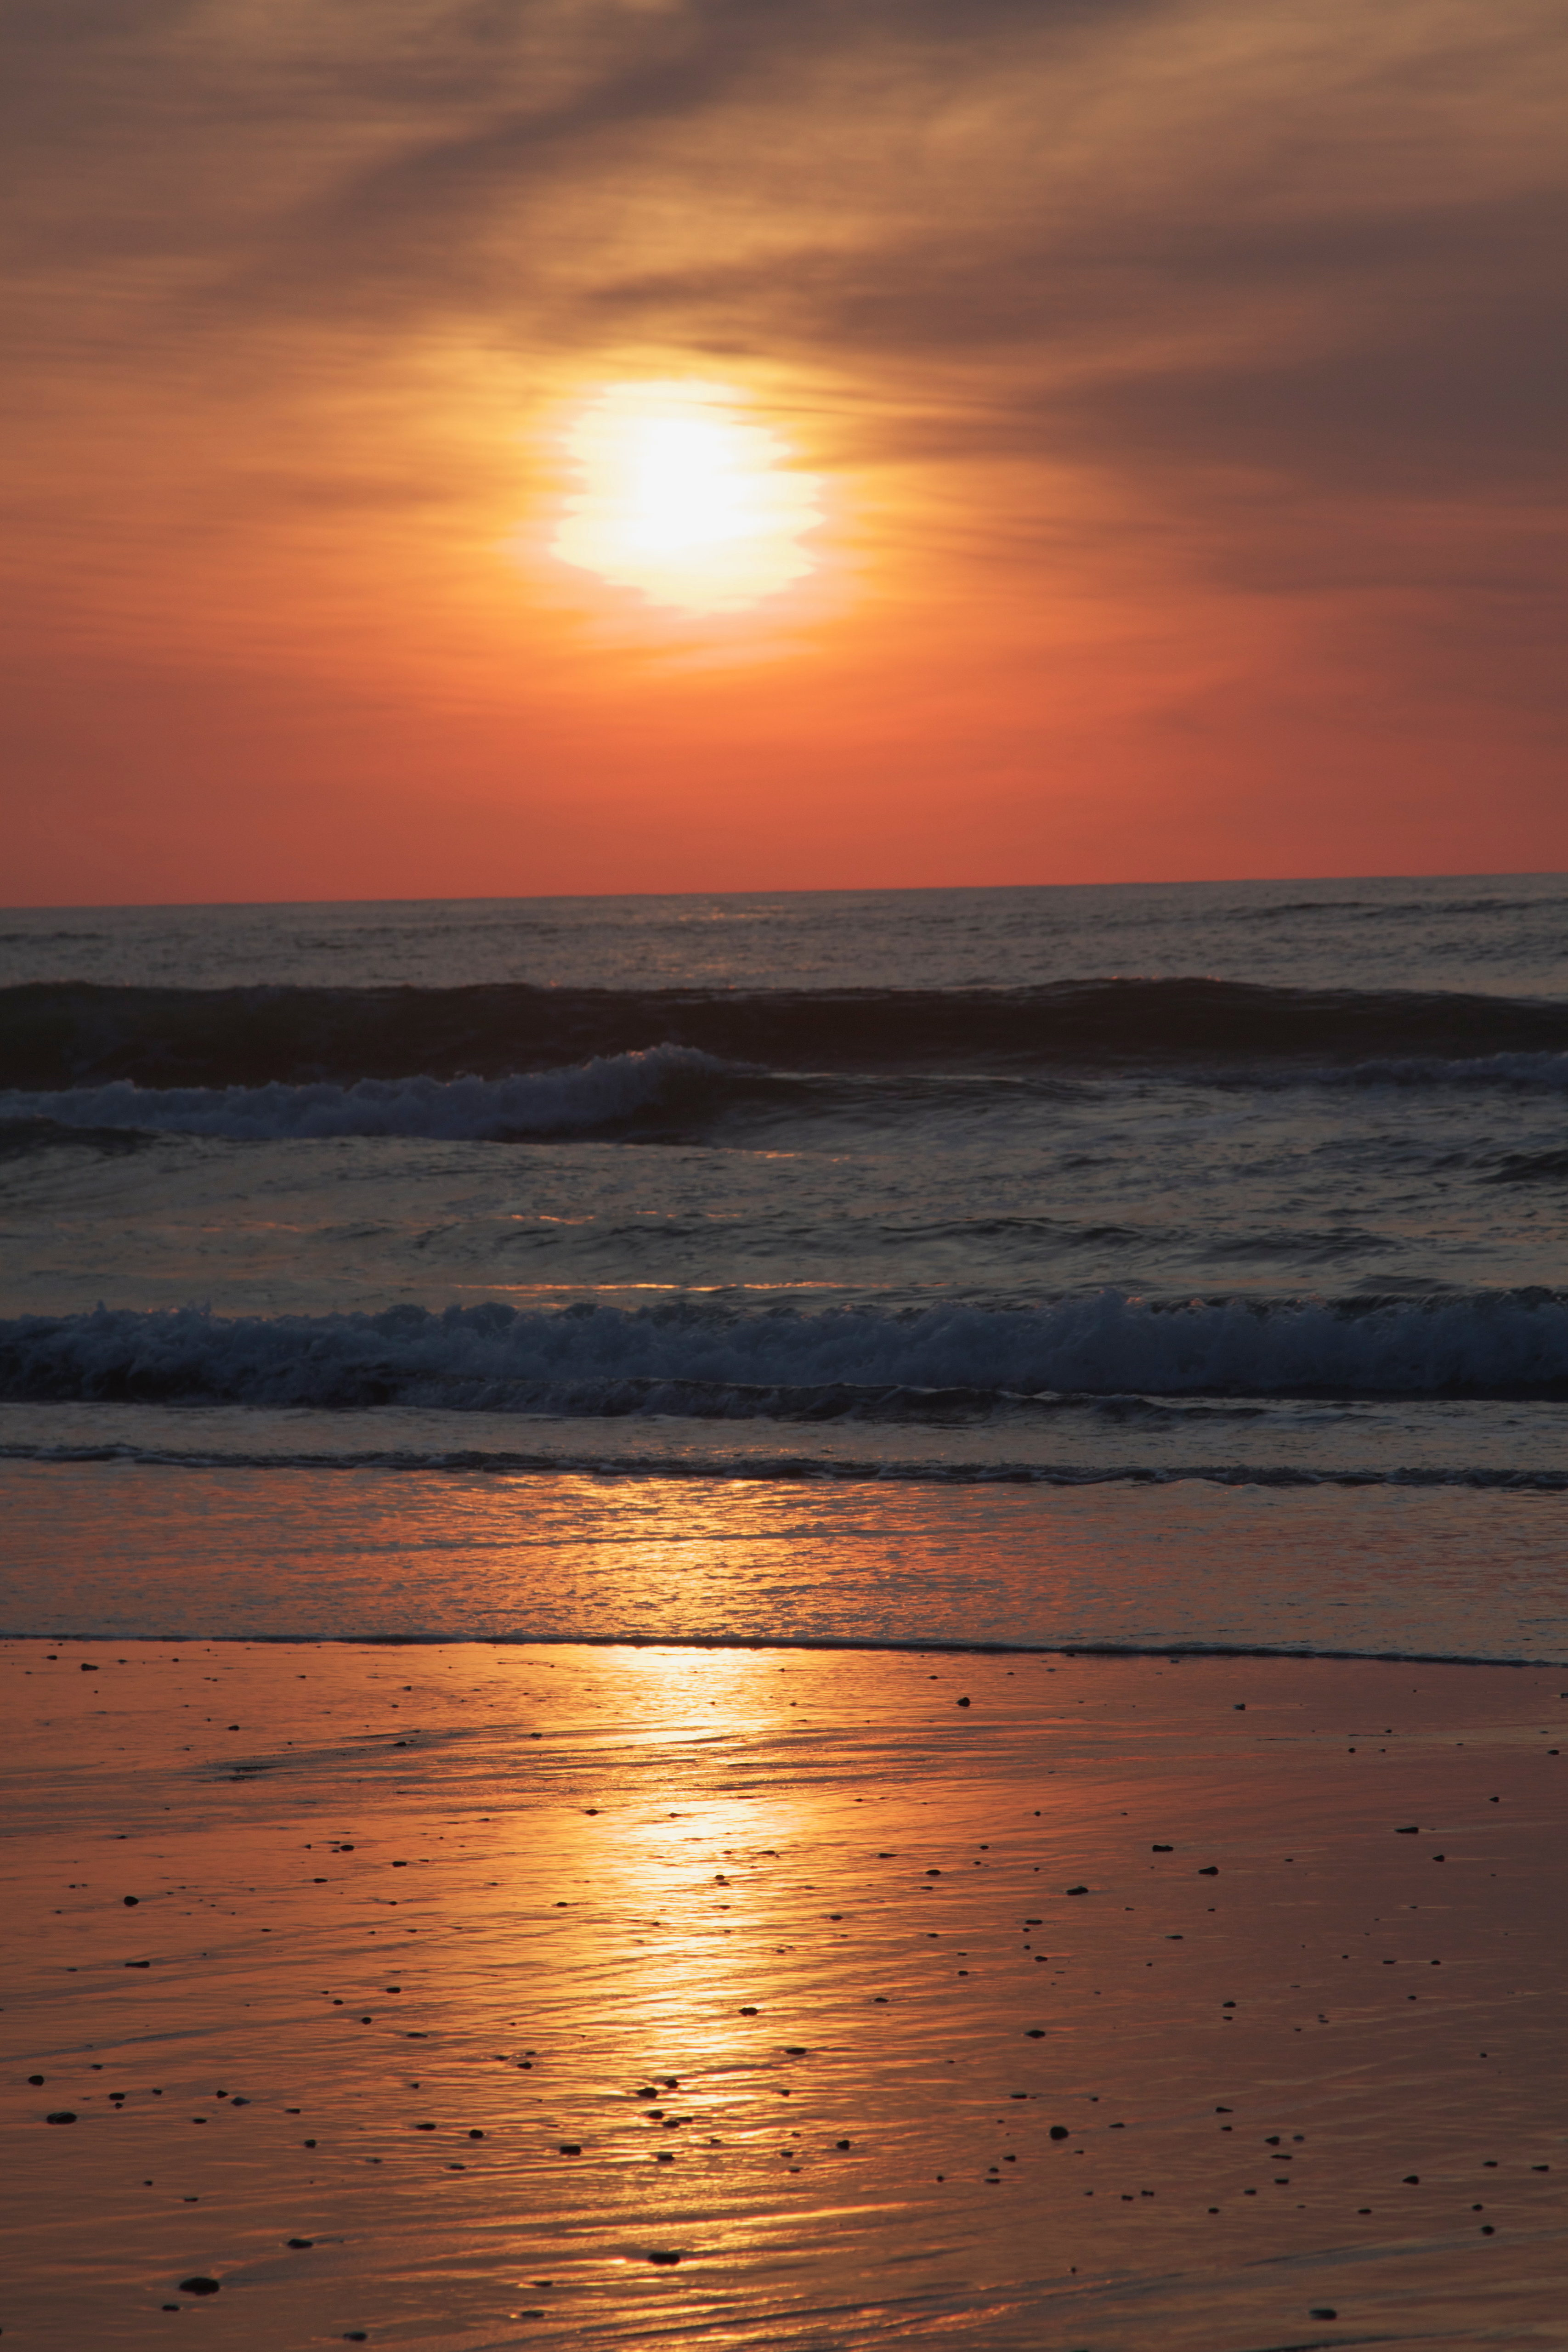 132181 download wallpaper Nature, Sunset, Sea, Beach, Glare, Sun screensavers and pictures for free